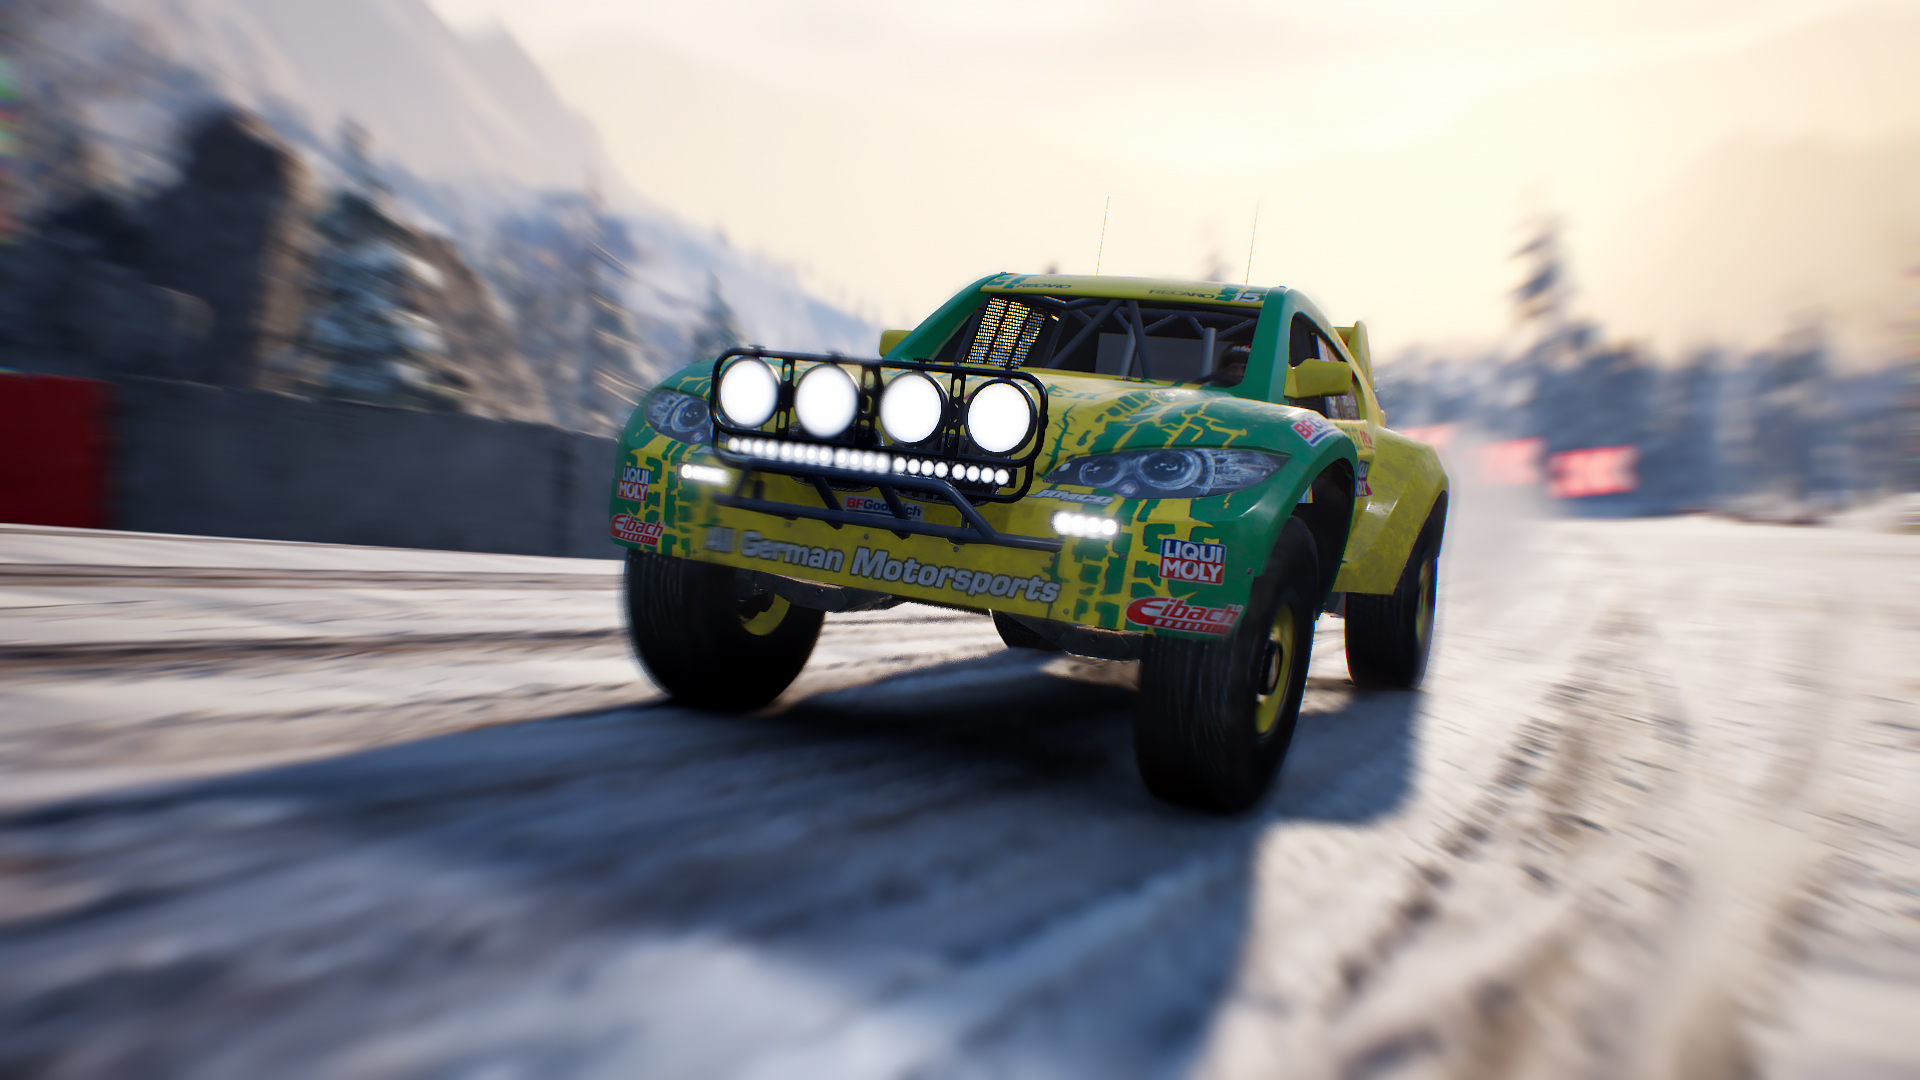 Gravel Free Car Bmw X6 Trophy Truck On Steam